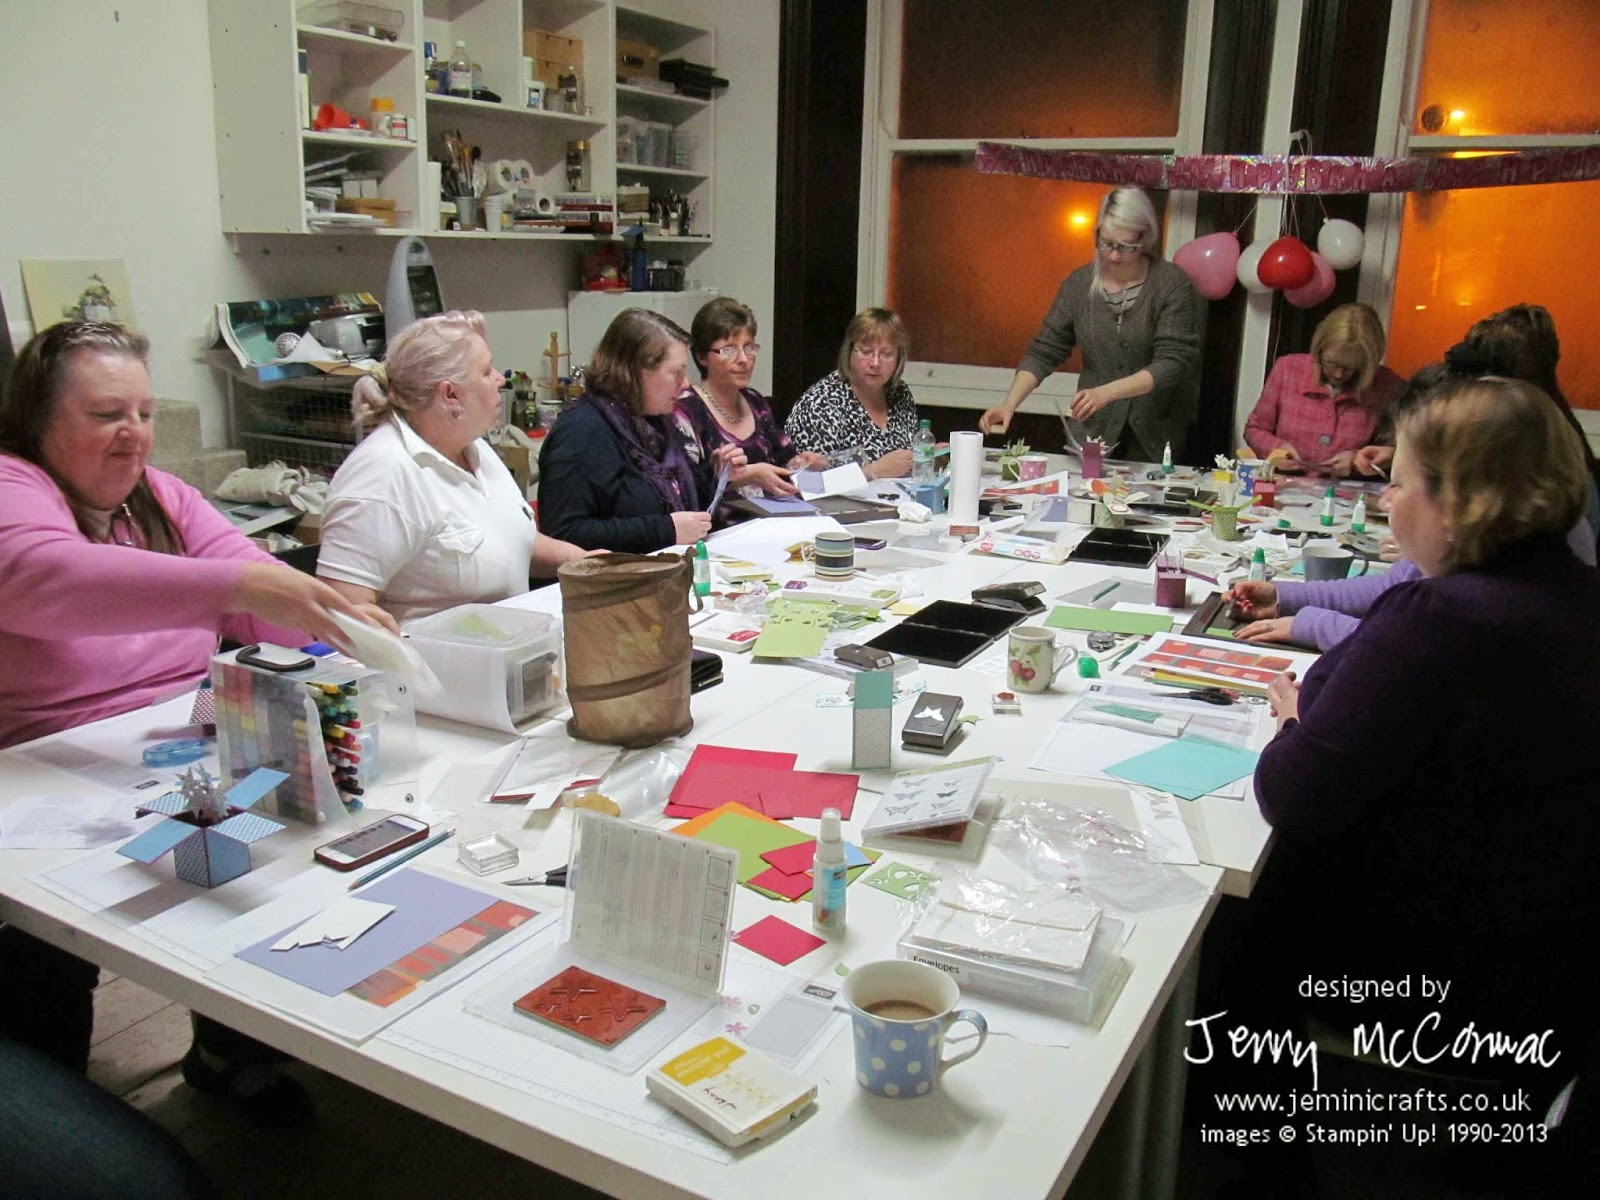 Jemini Crafts Card Classes in Brackley, Northamptonshire